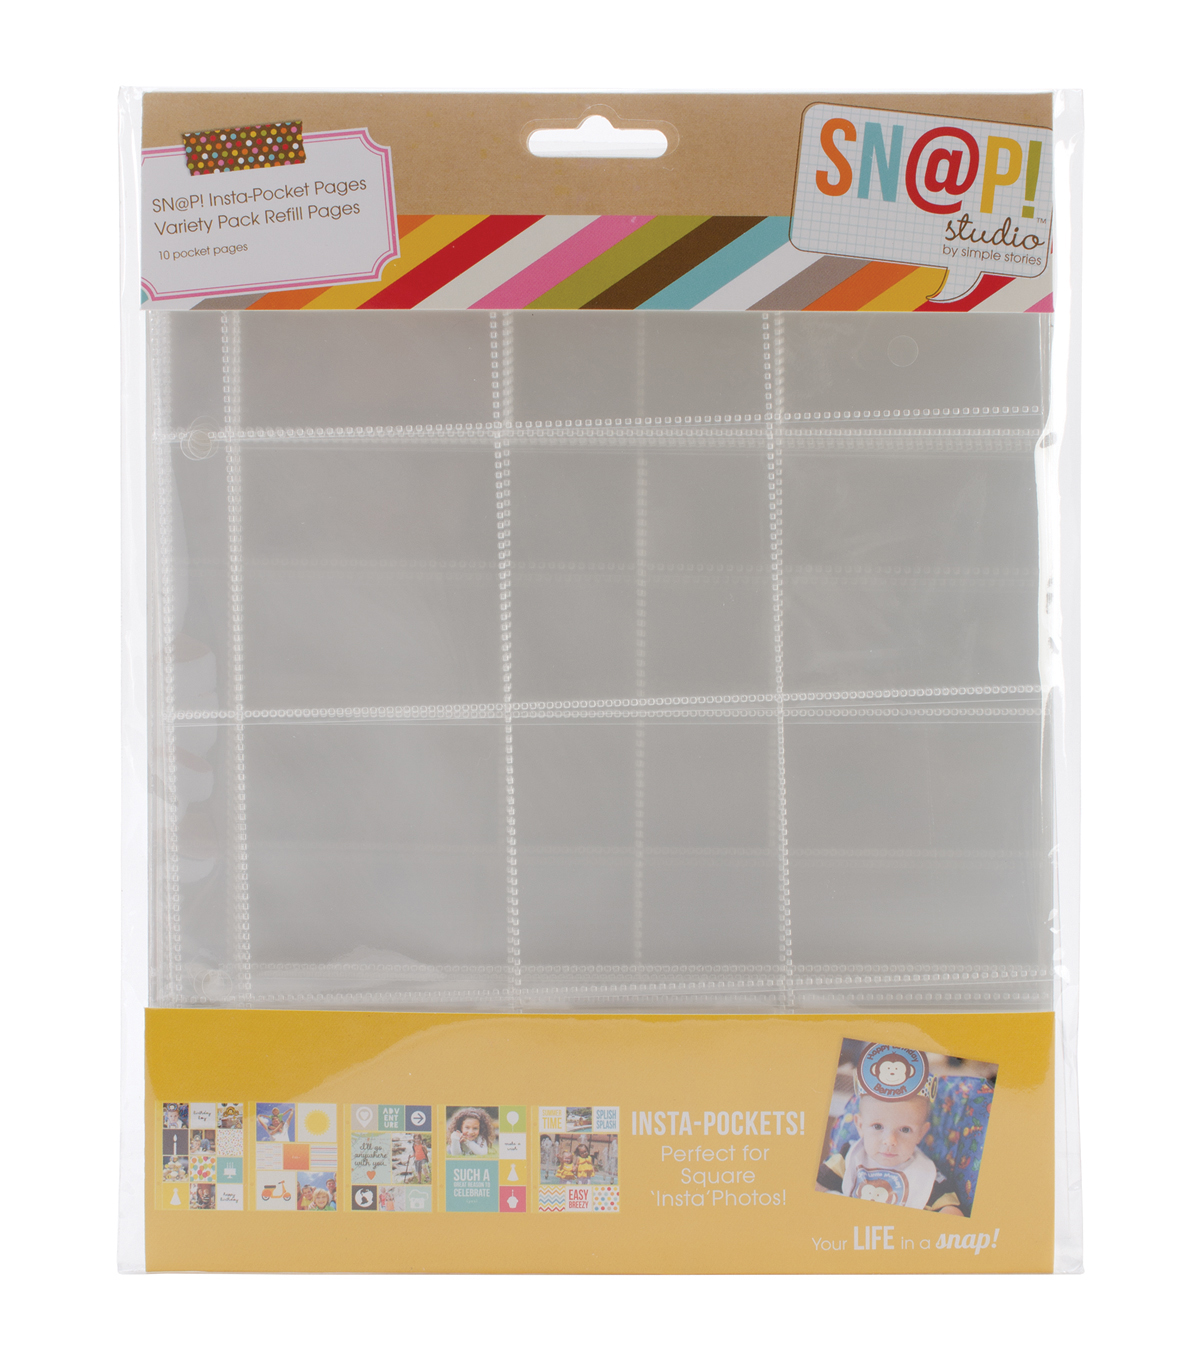 Sn@p! Insta Pocket Pages For 6\u0022X8\u0022 Binders 10/Pkg-Variety Pack